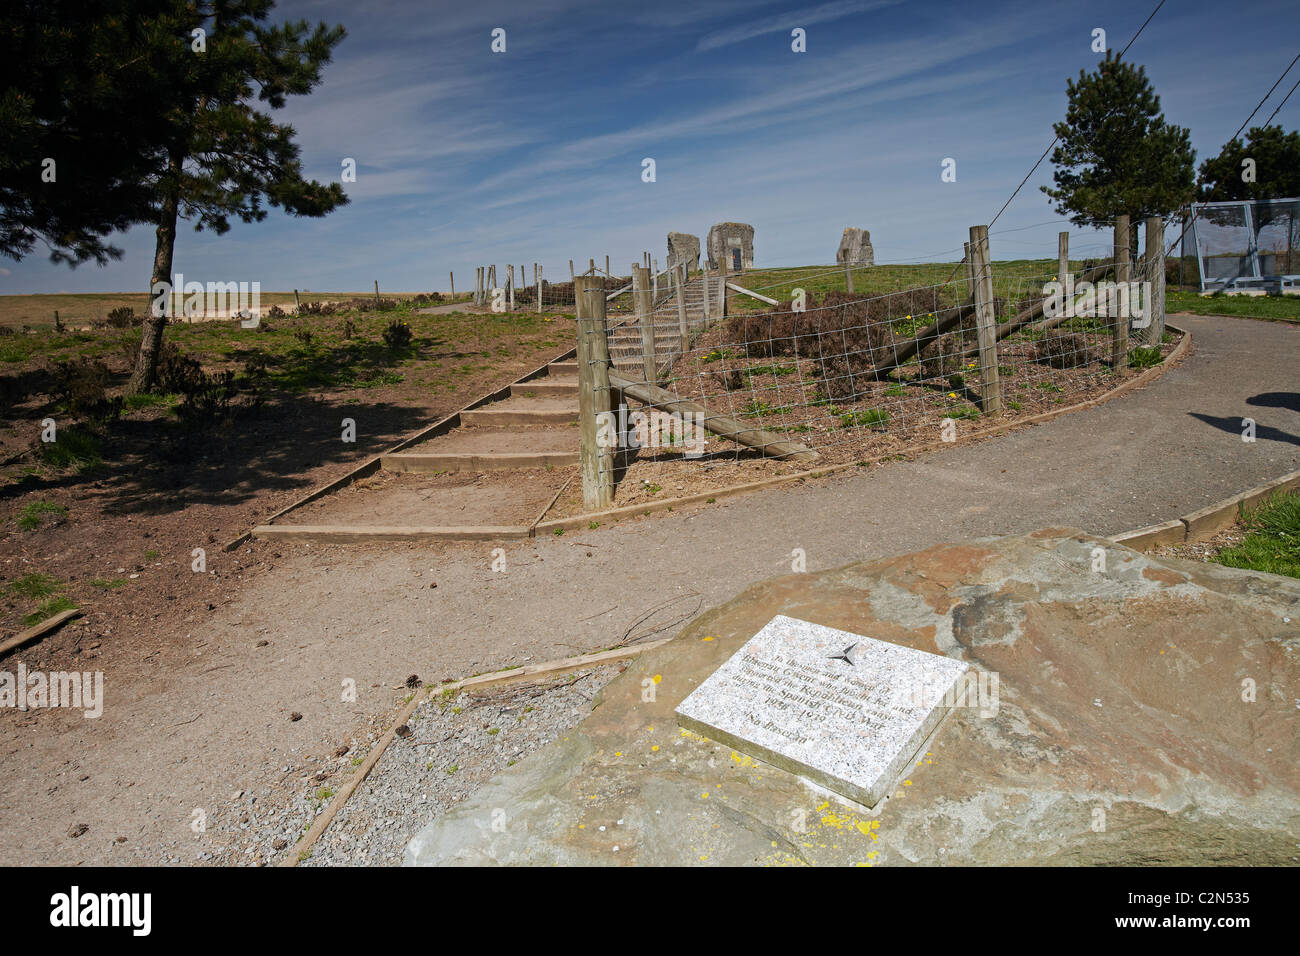 Memorial to Aneurin Bevan, and Plaque in honour to volunteers in the Spanish Civil War, between Tredegar and Ebbw - Stock Image